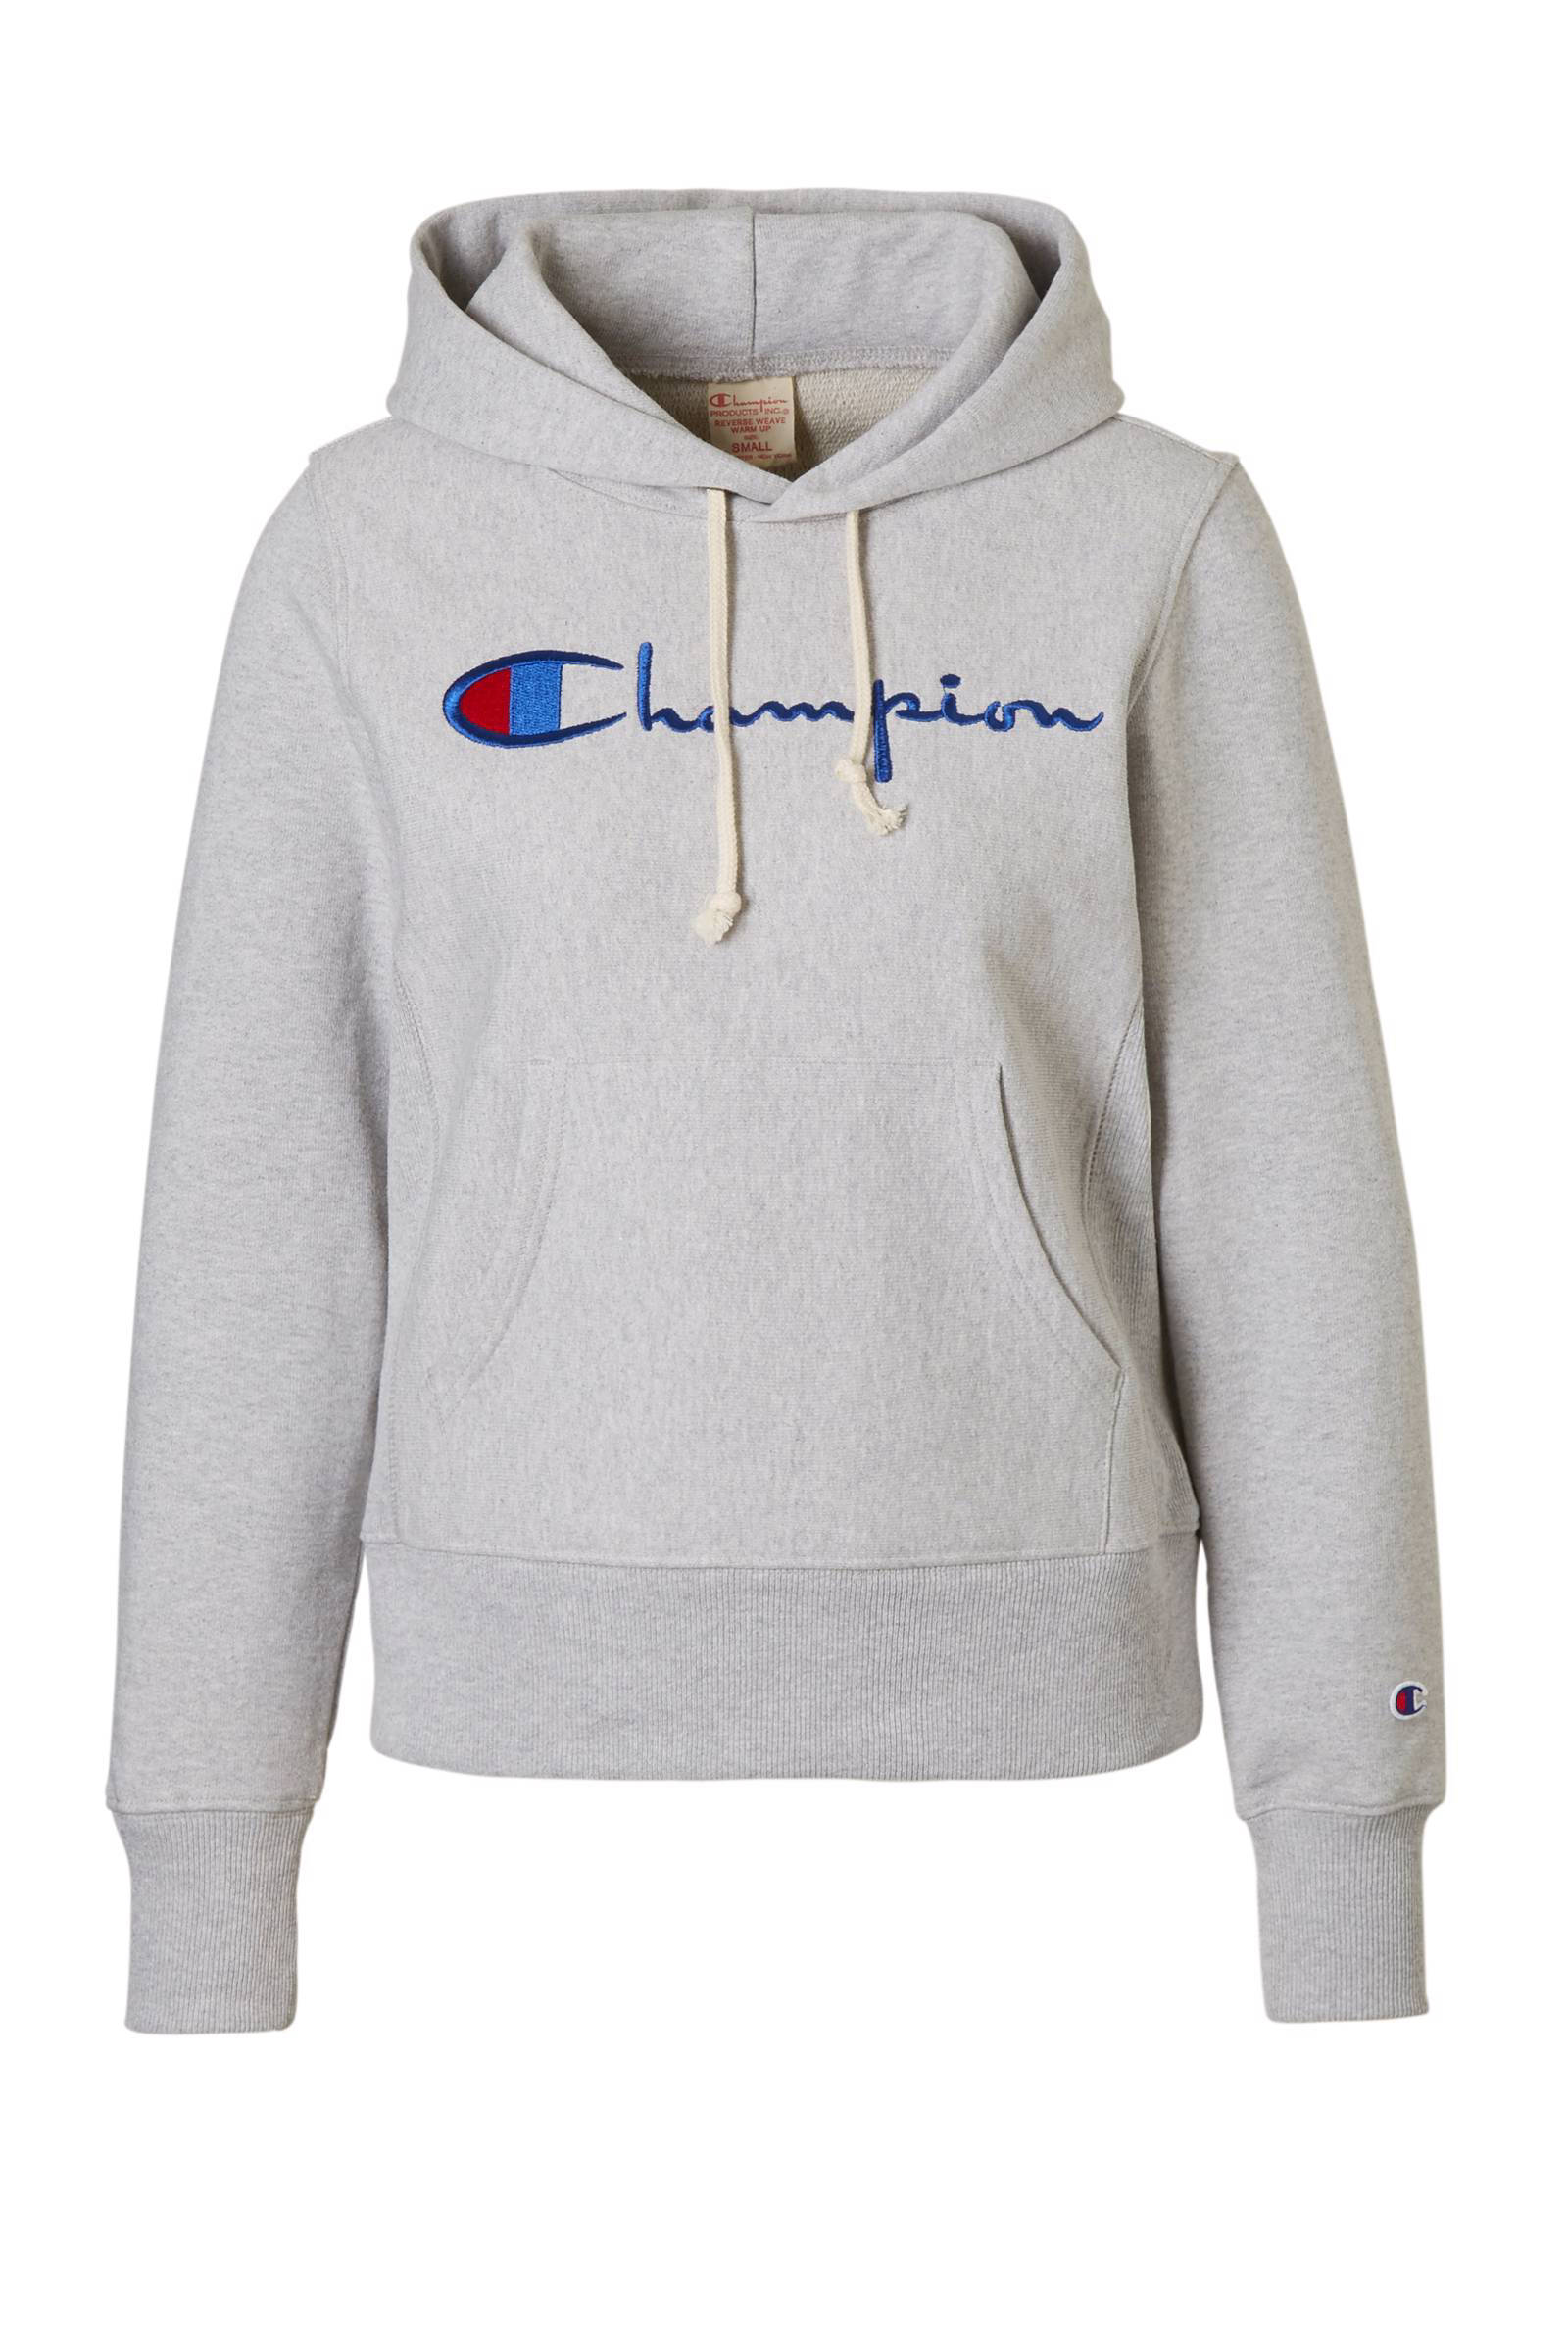 Champion Sweater Wehkamp Champion Wehkamp Champion Sweater Wehkamp Sweater Champion Sqqnd8O